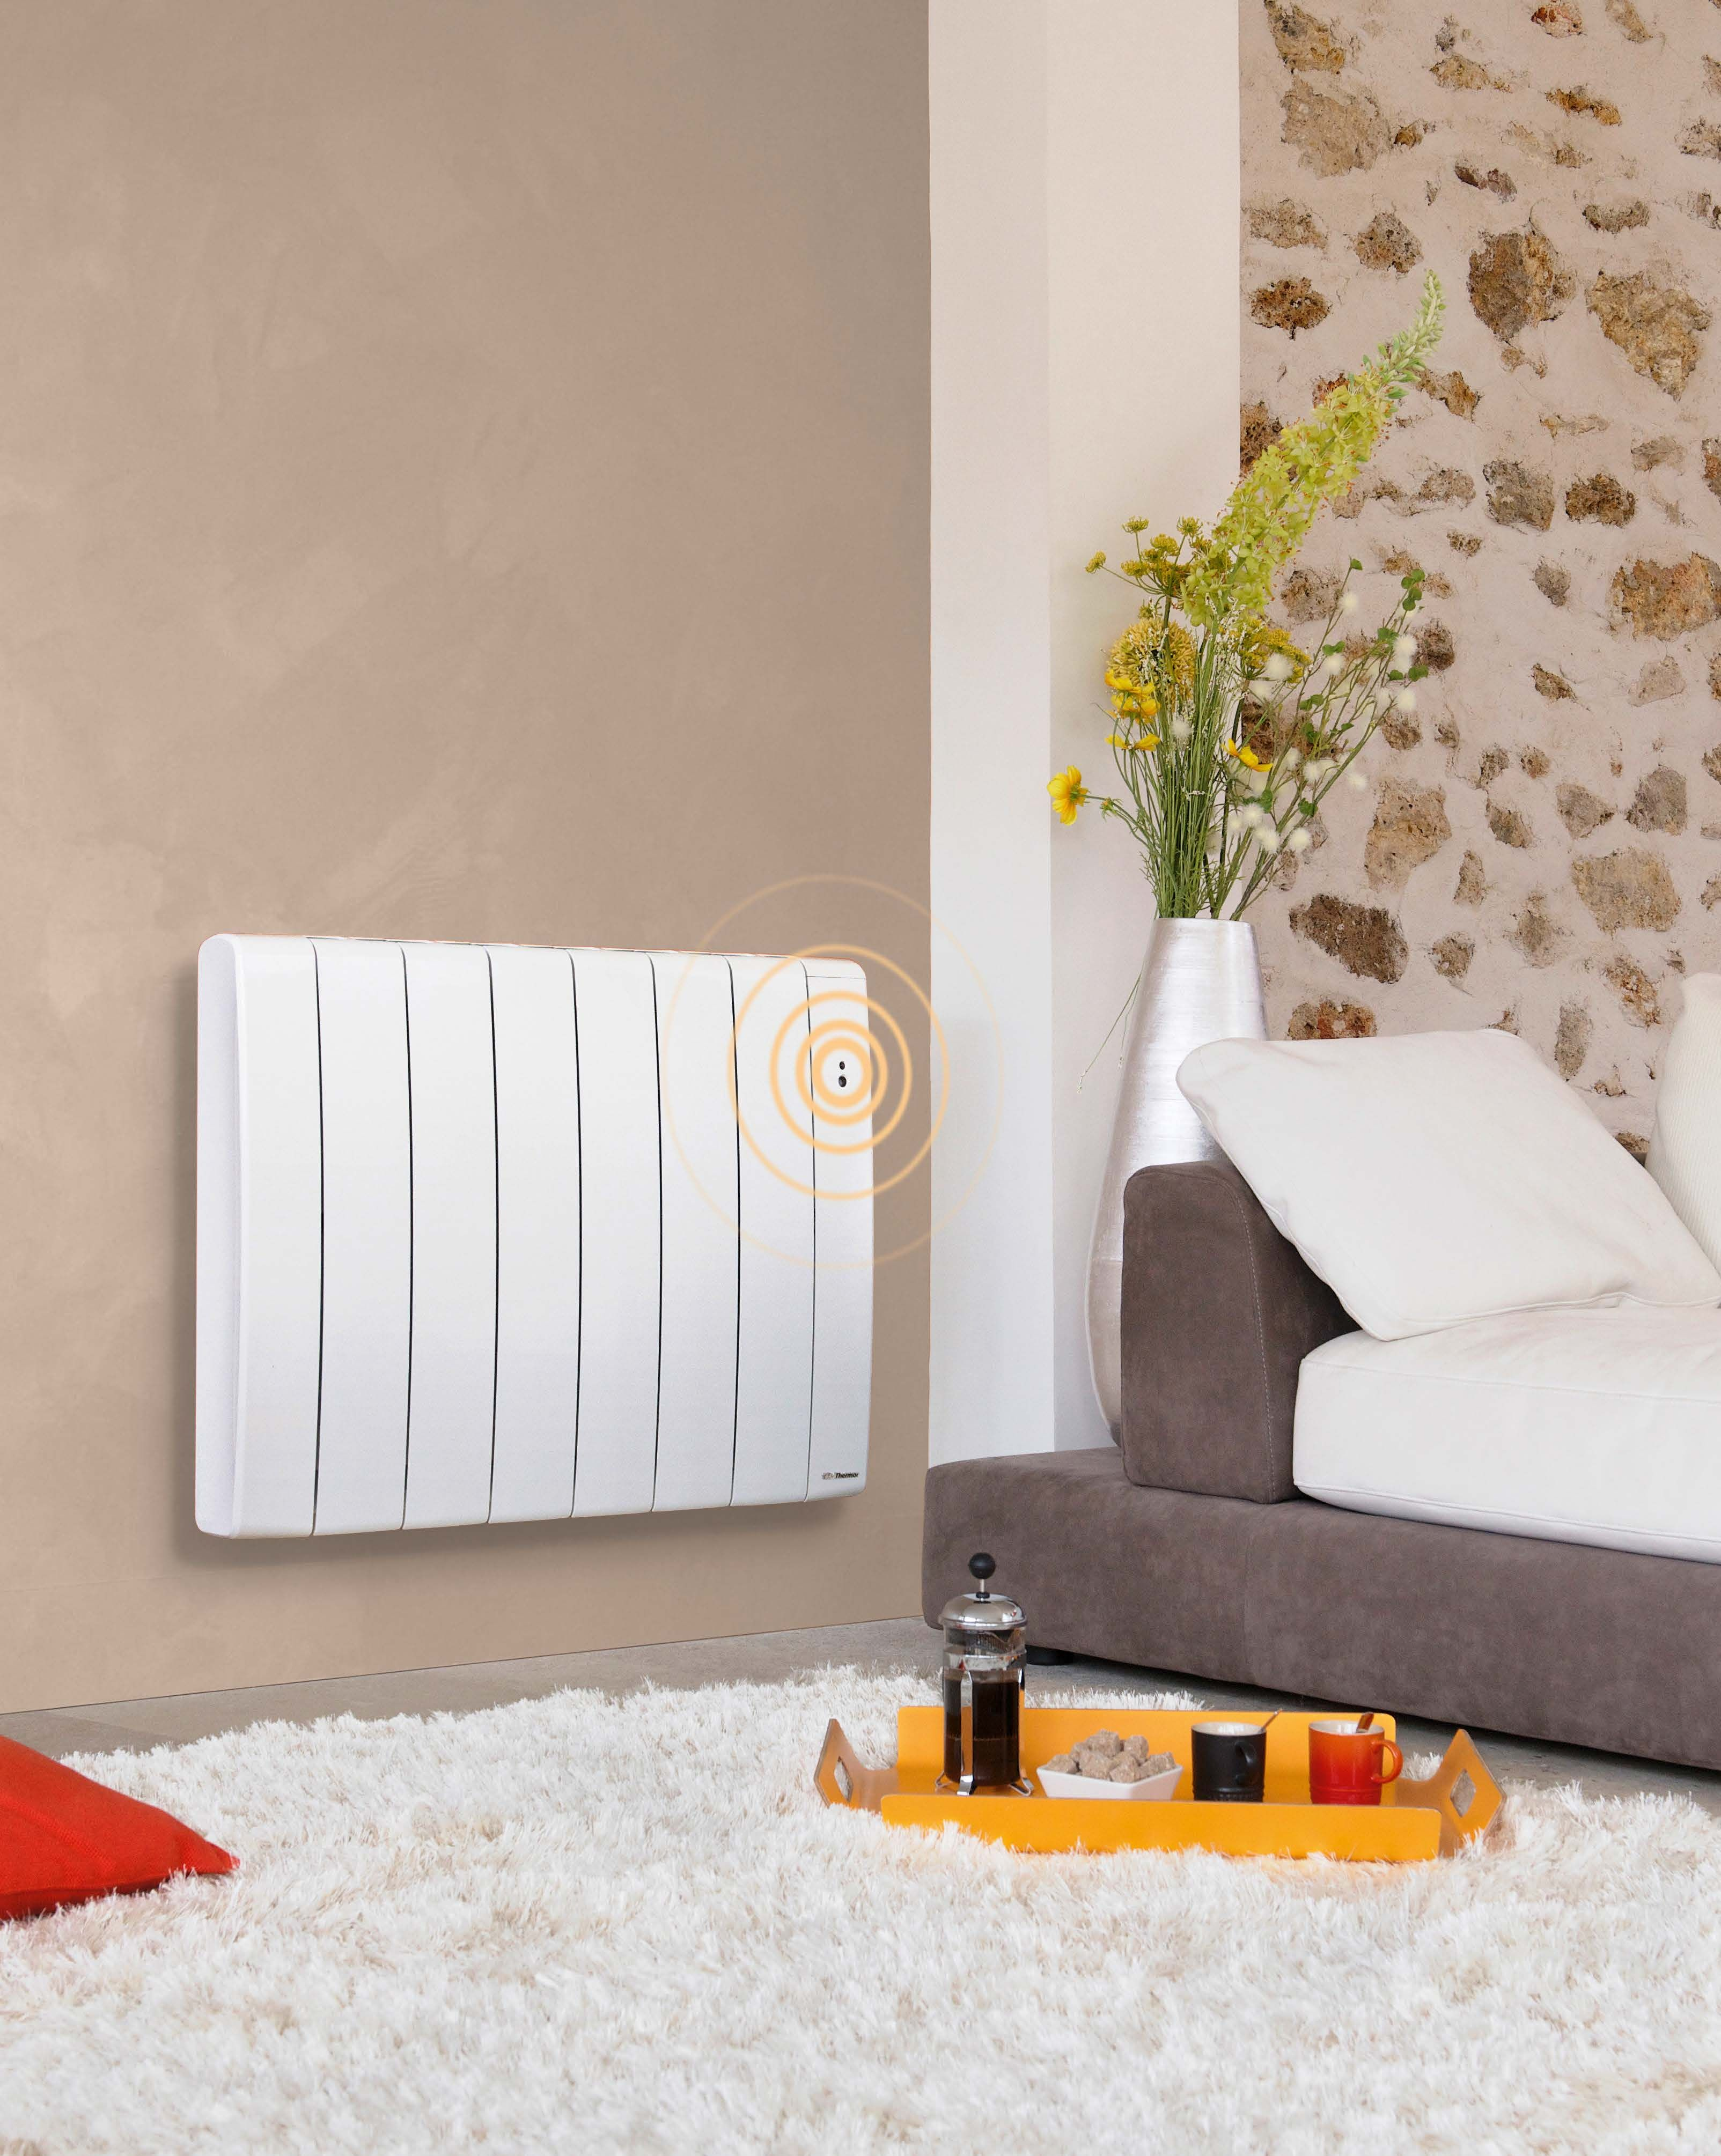 radiateurs lectriques conomiques simple radiateur. Black Bedroom Furniture Sets. Home Design Ideas